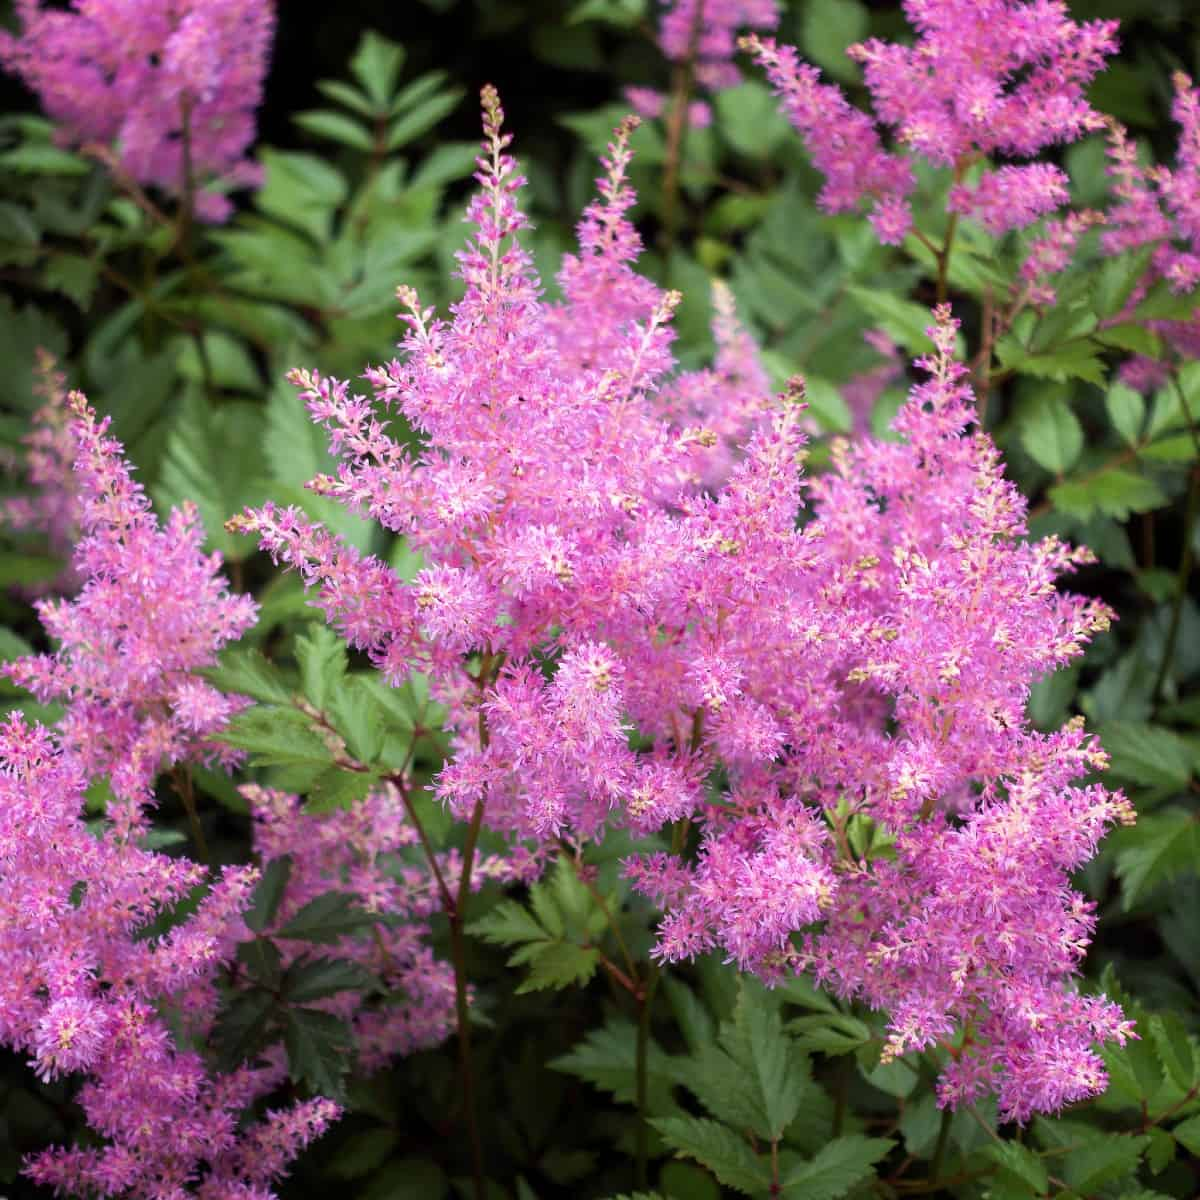 the fragrant blooms of the astilbe attract birds